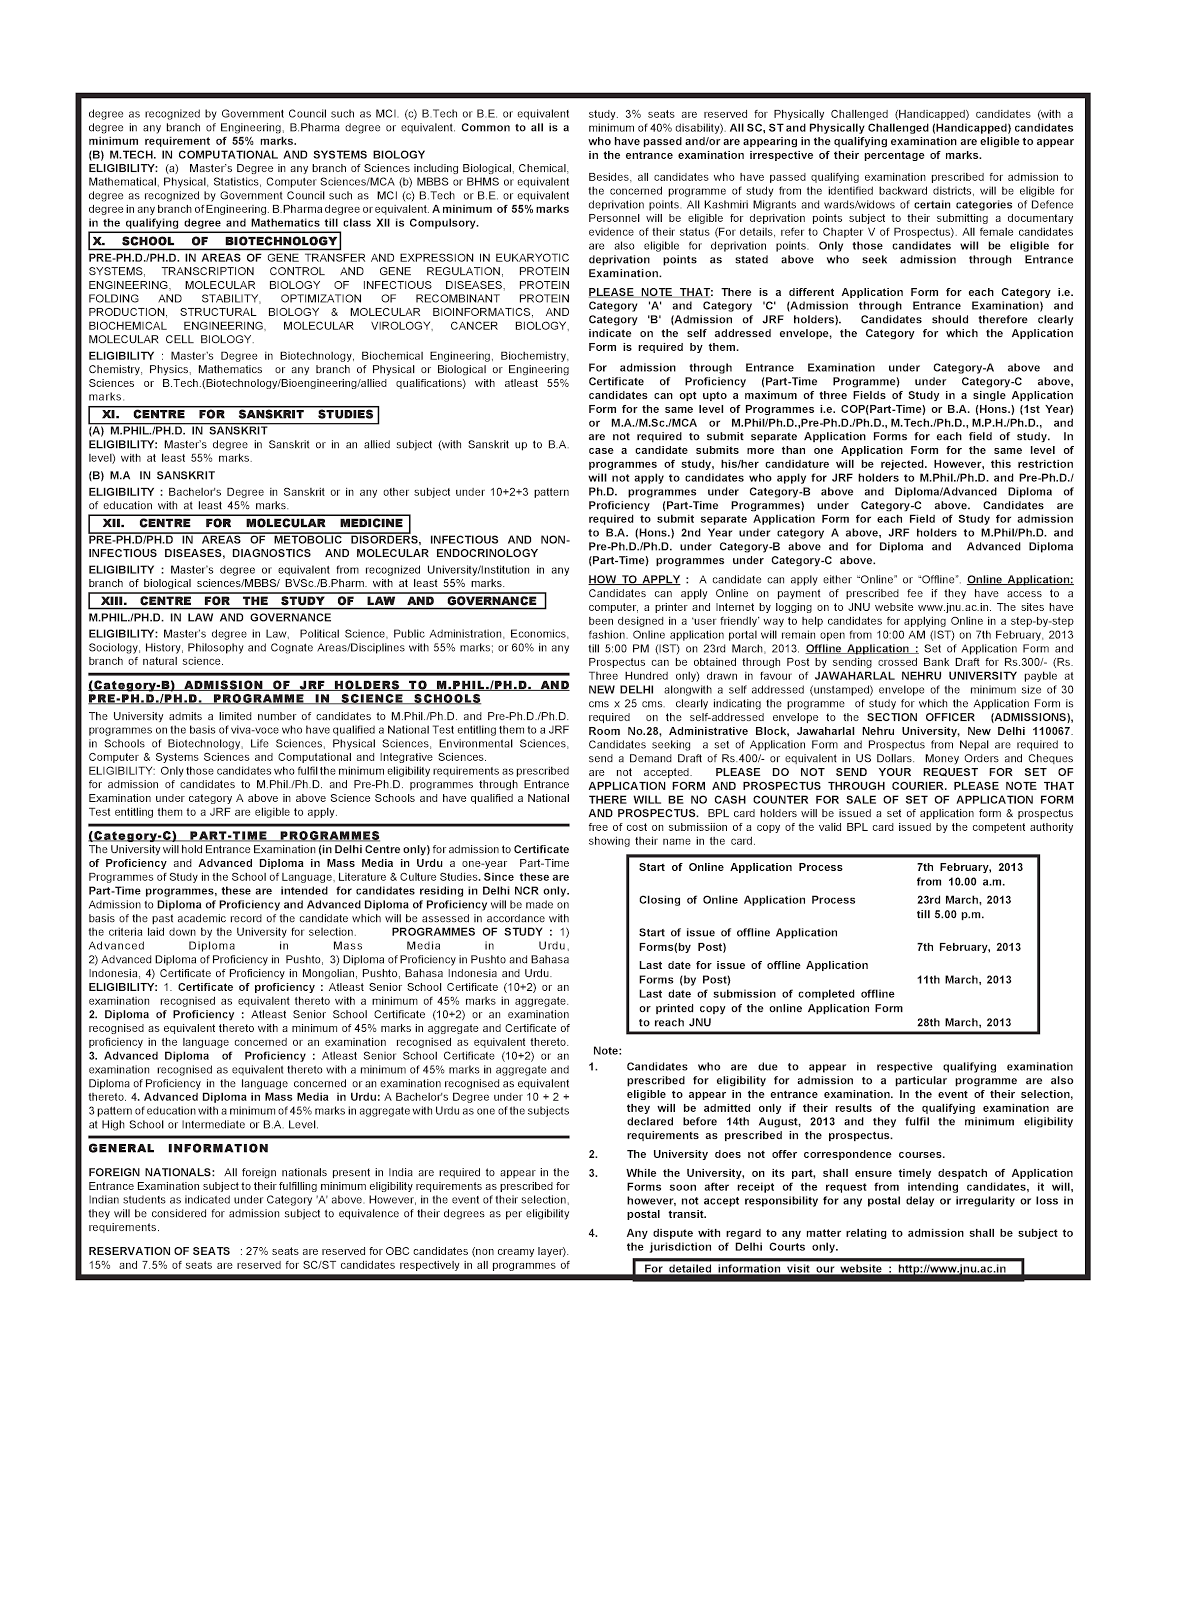 cpp online application form 2013